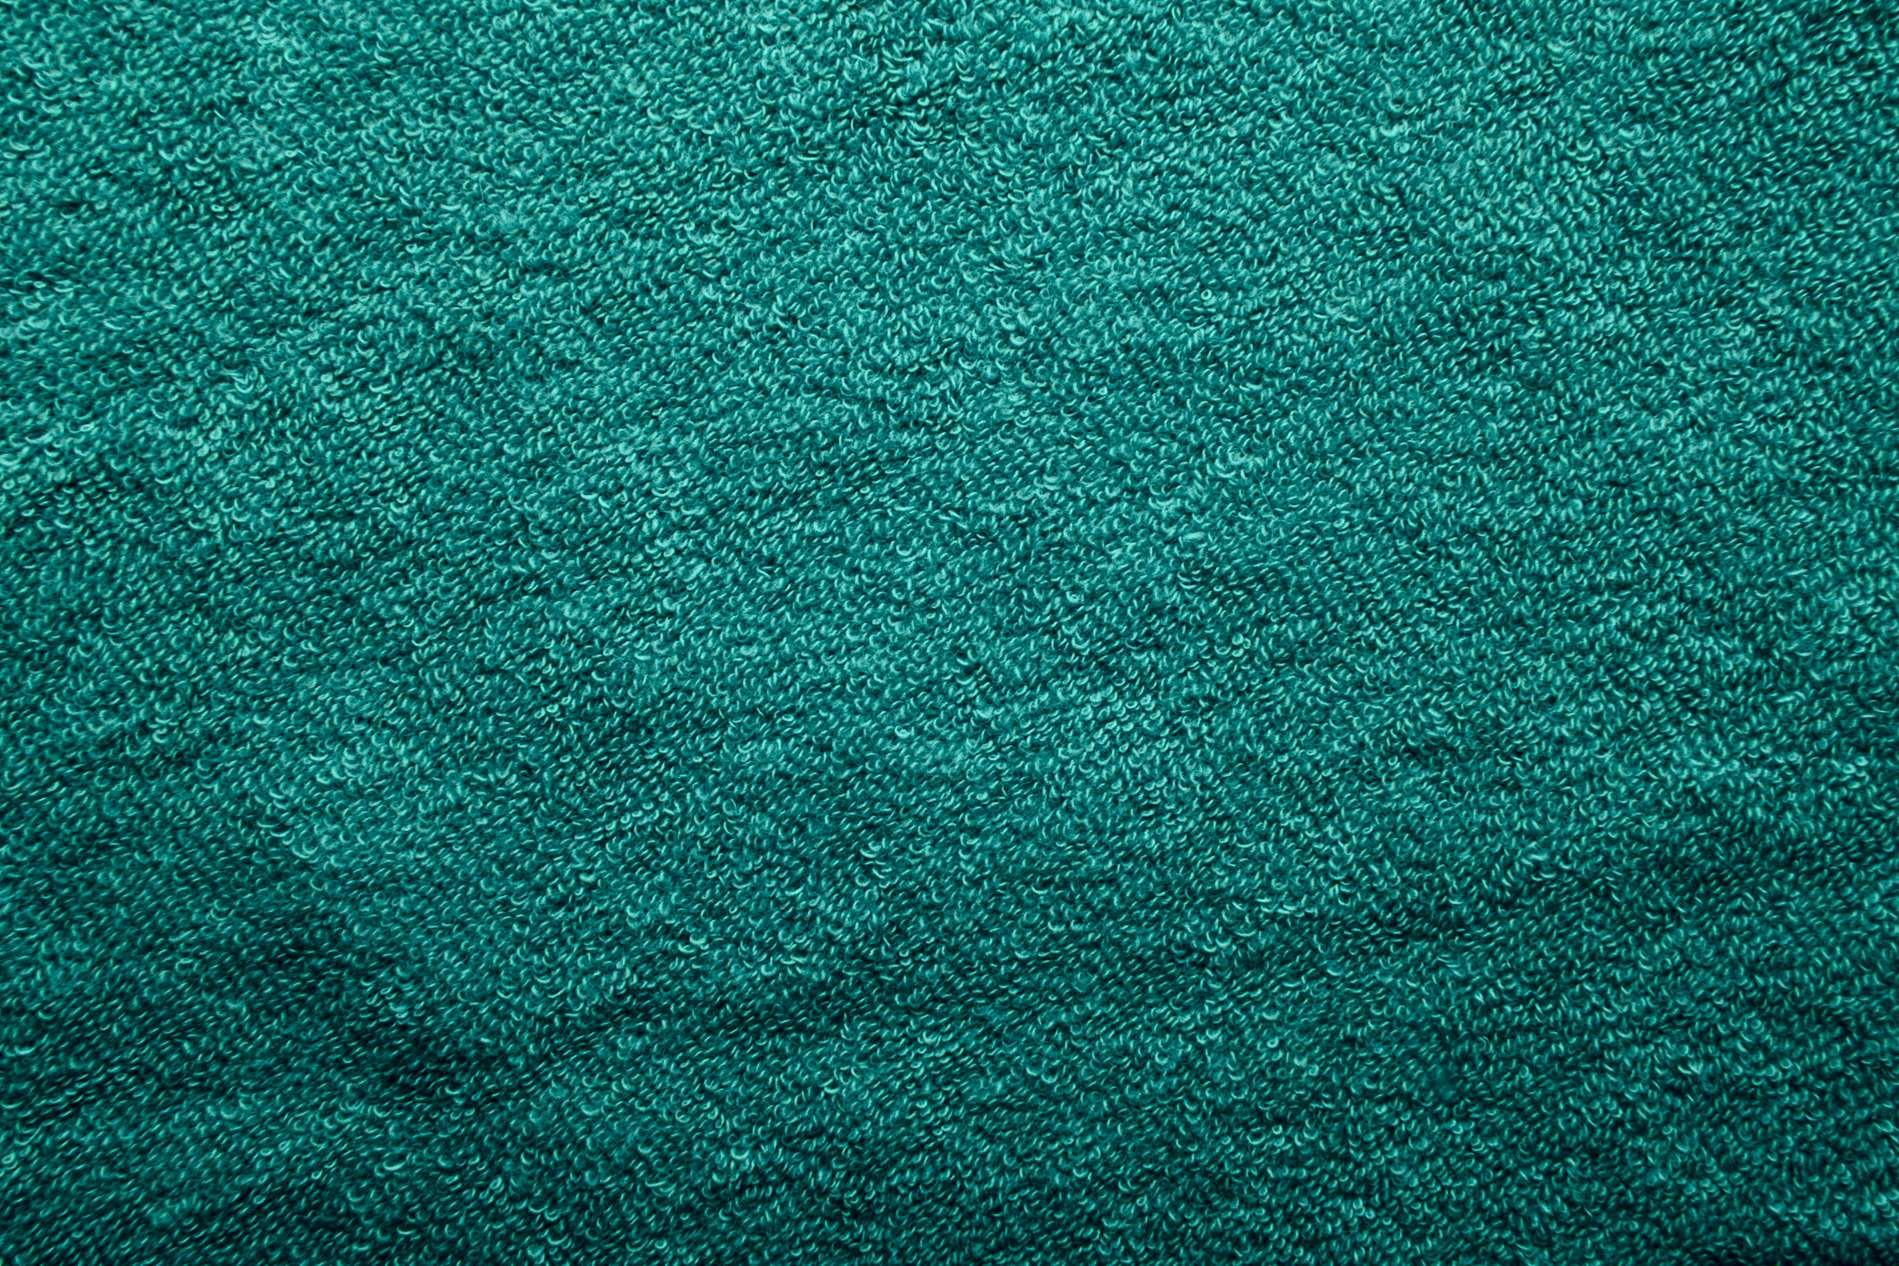 Green Soft Fabric Texture PhotoHDX